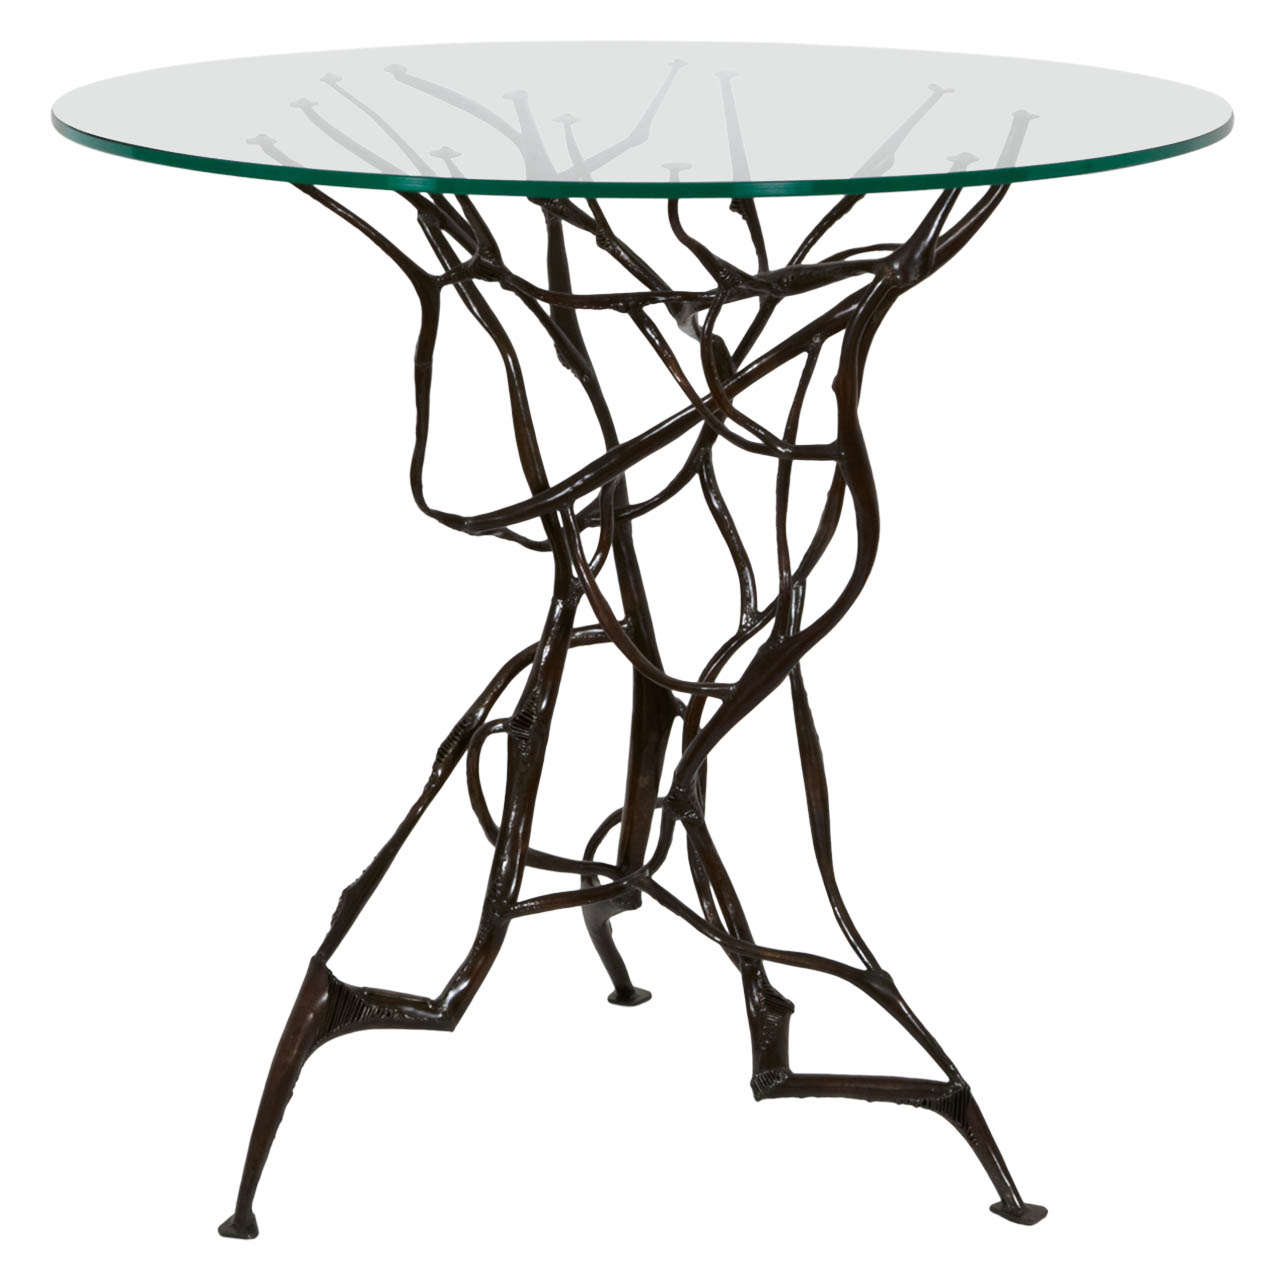 Gueridon table, 2013, by Manuel Simon